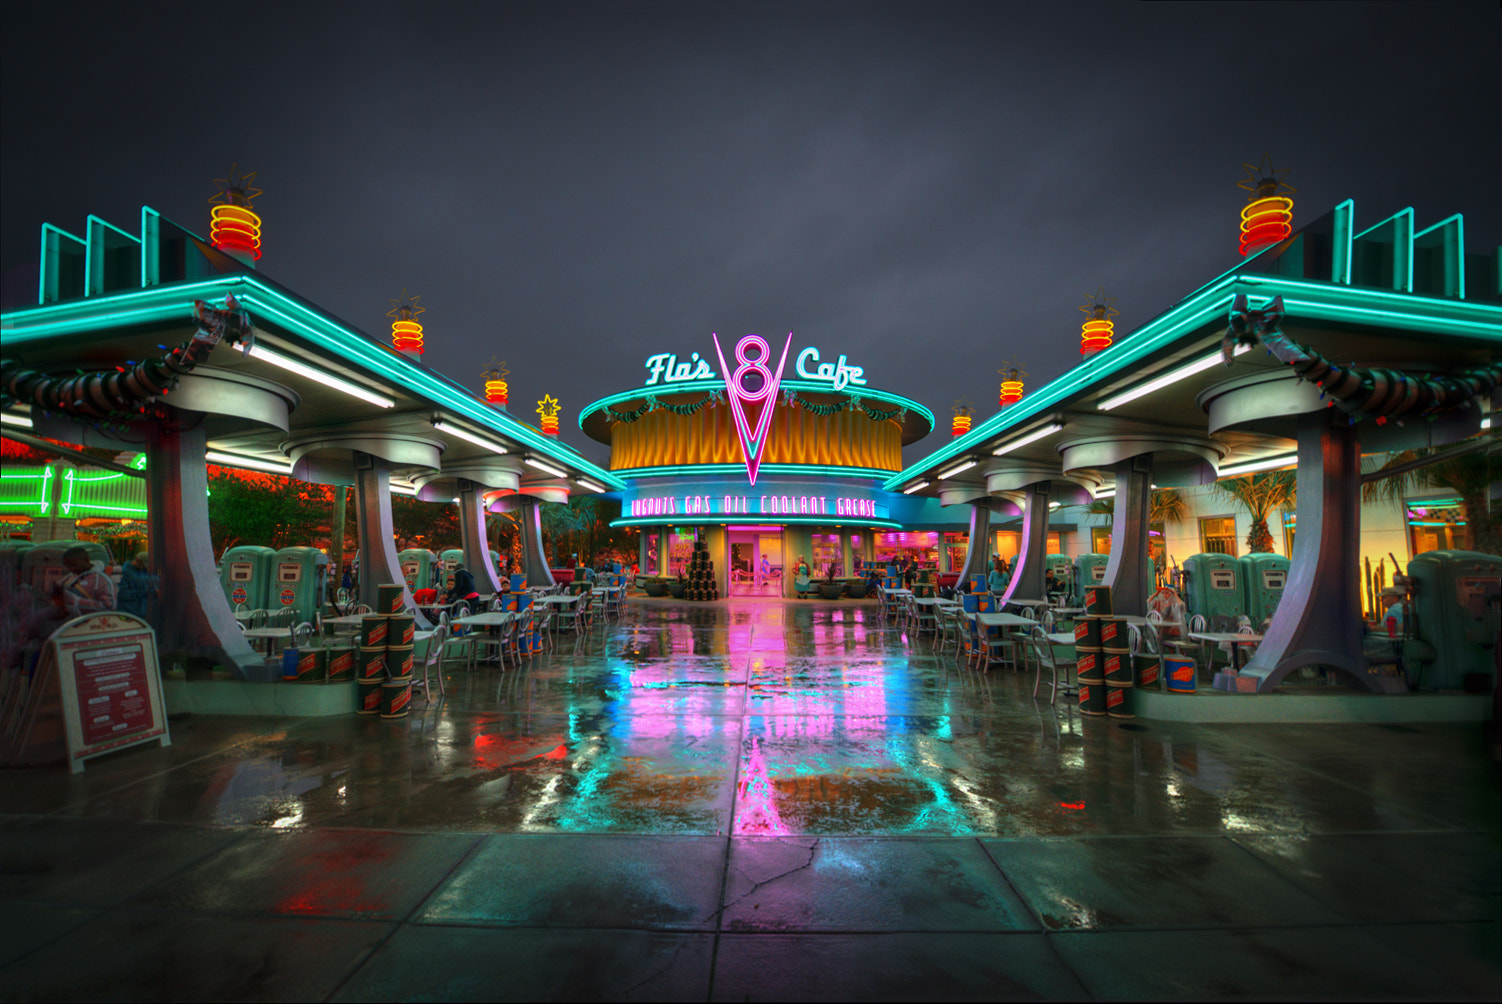 Photograph Rainy Night At Flo's Cafe by William McIntosh on 500px